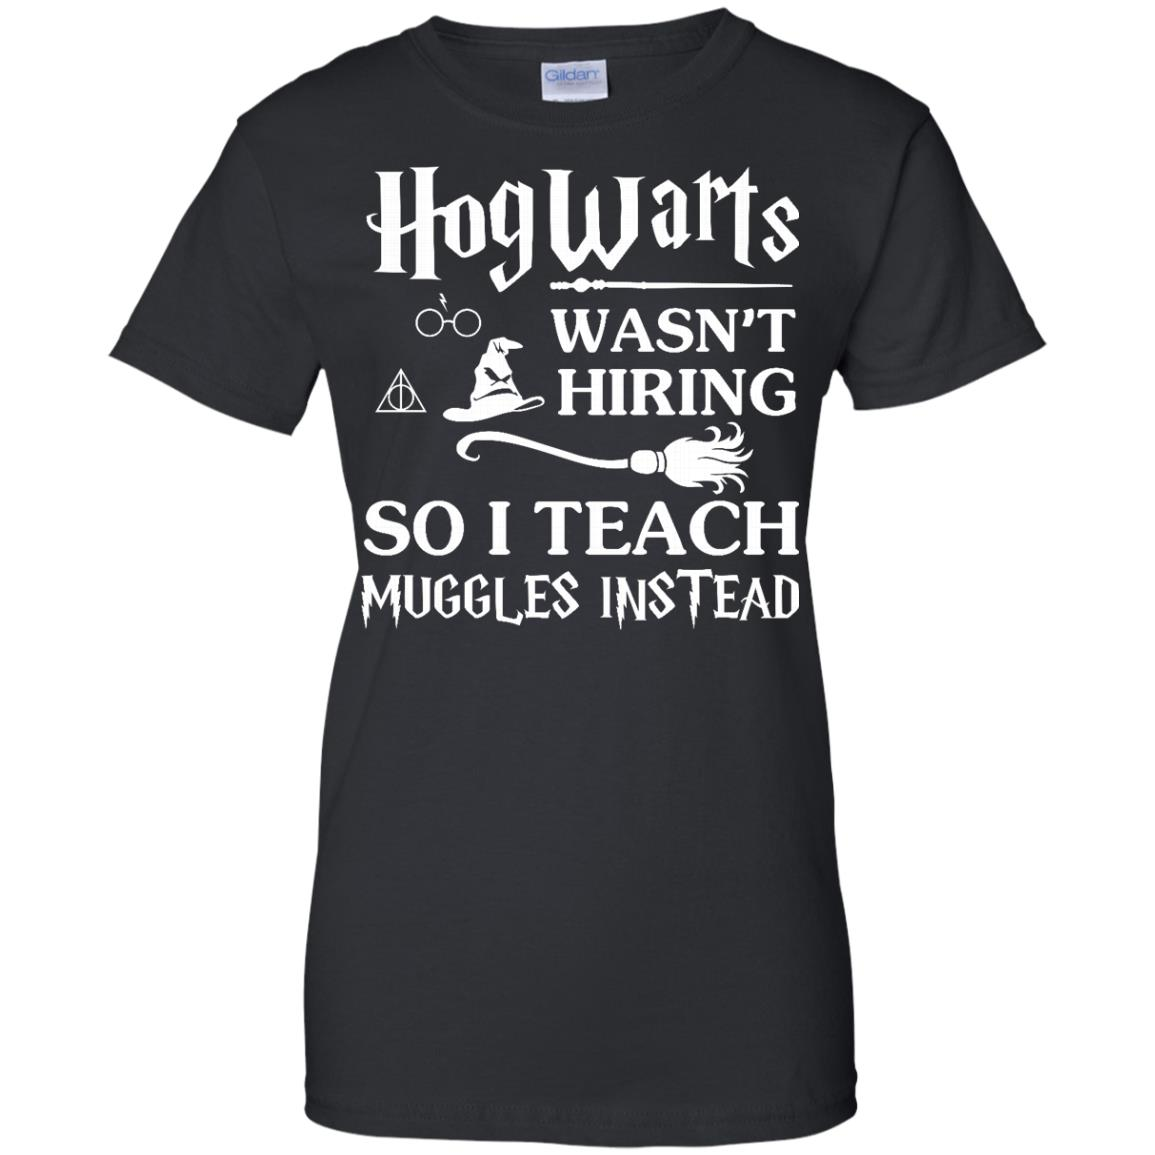 image 278px Hogwarts Wasn't Hiring So I Teach Muggles Instead T Shirts, Hoodies, Tank Top